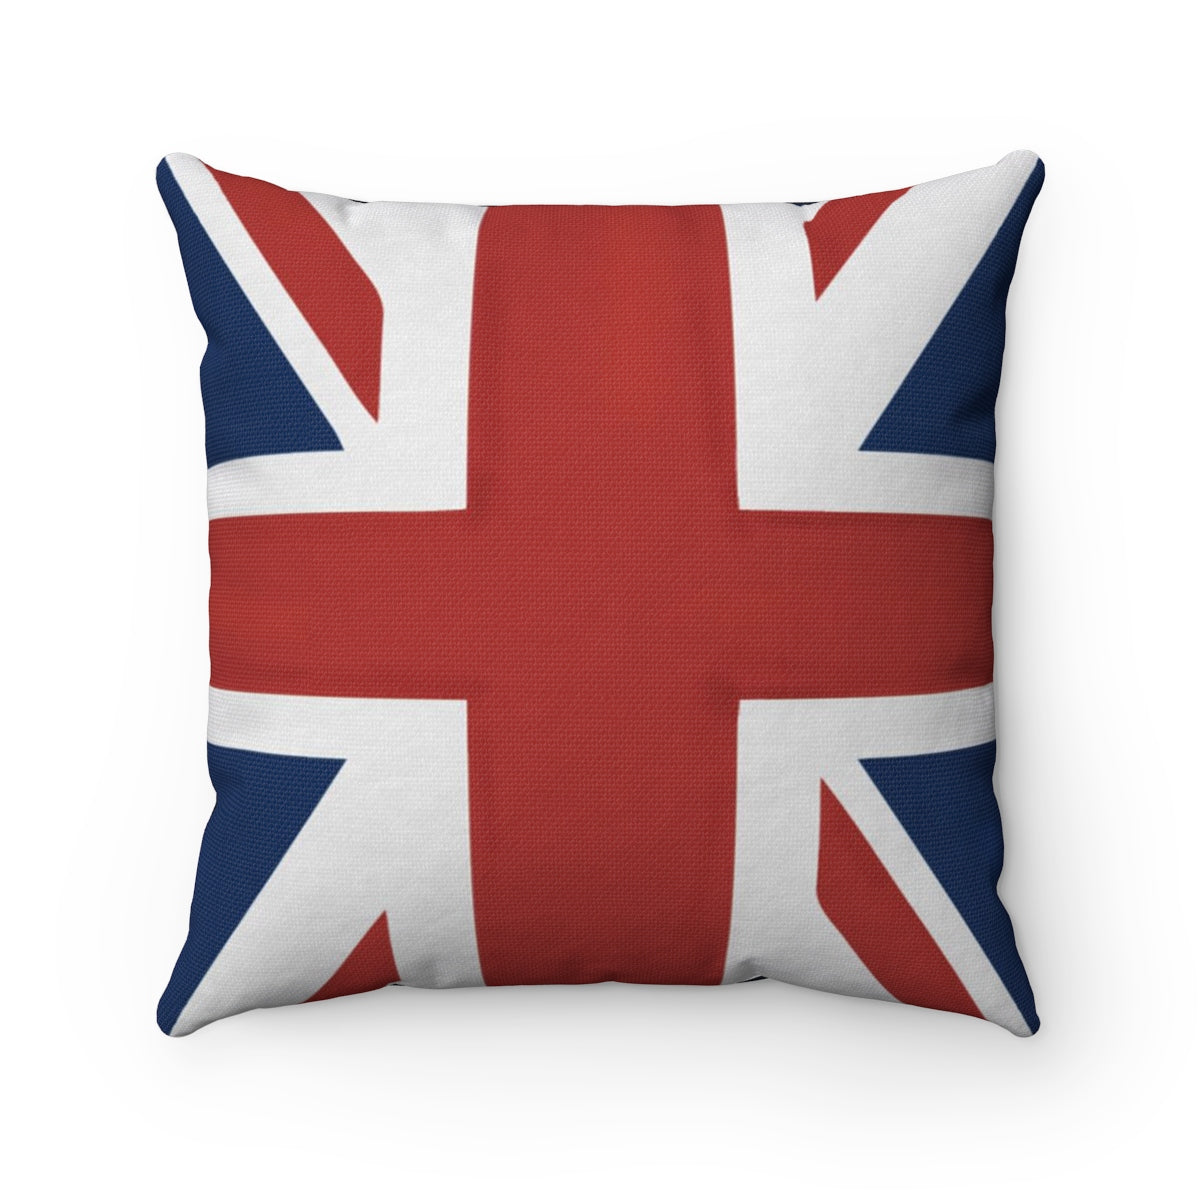 Proud British Military - LOVE MY HERO  - Spun Polyester Square Pillow